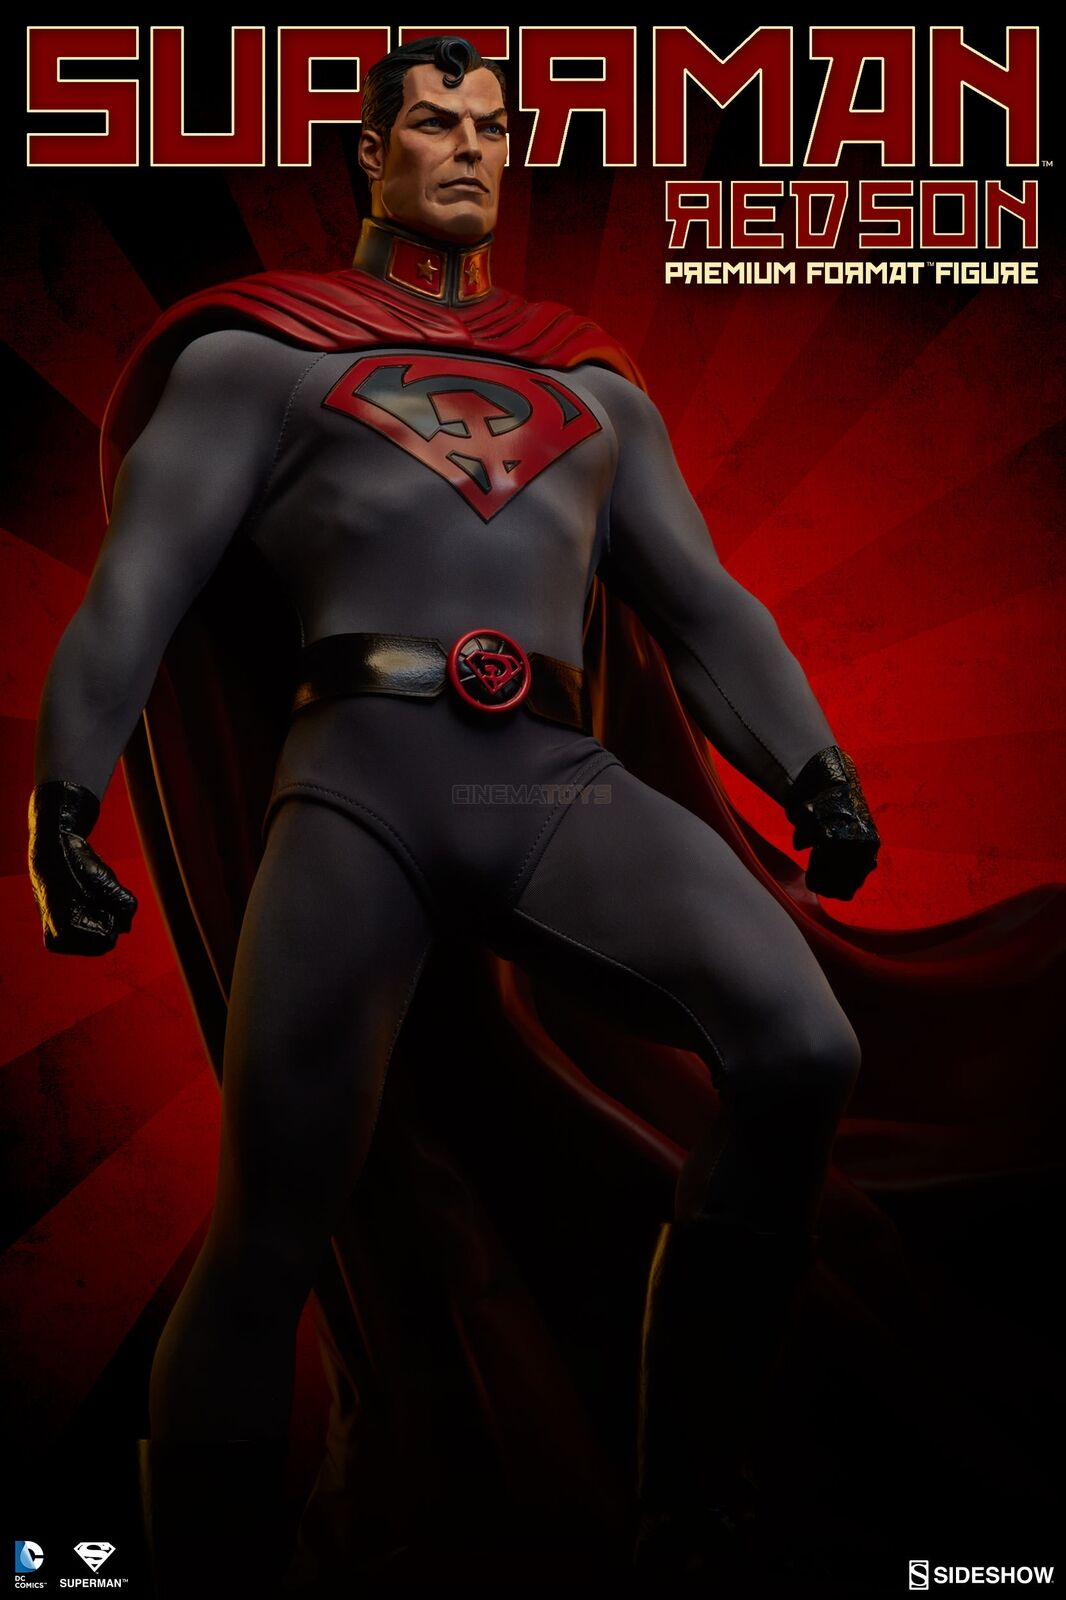 DC Superman The Man of Steel Red Son Premium Format Figure Sideshow Statue